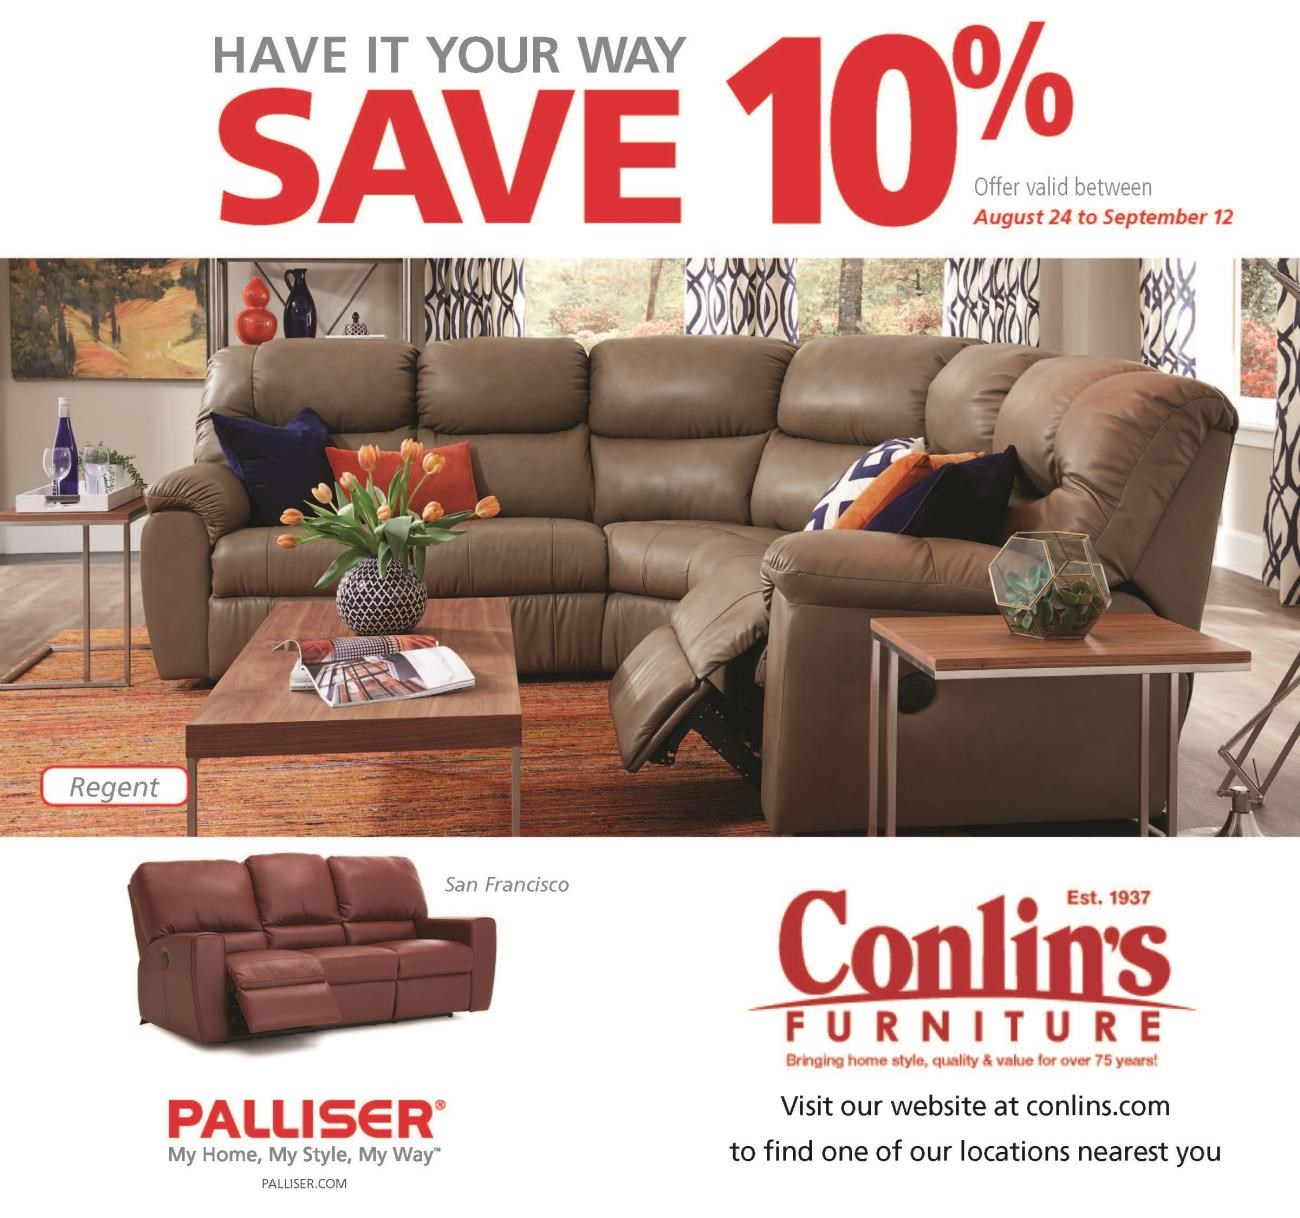 Current Promotions At Conlinu0027s Furniture: